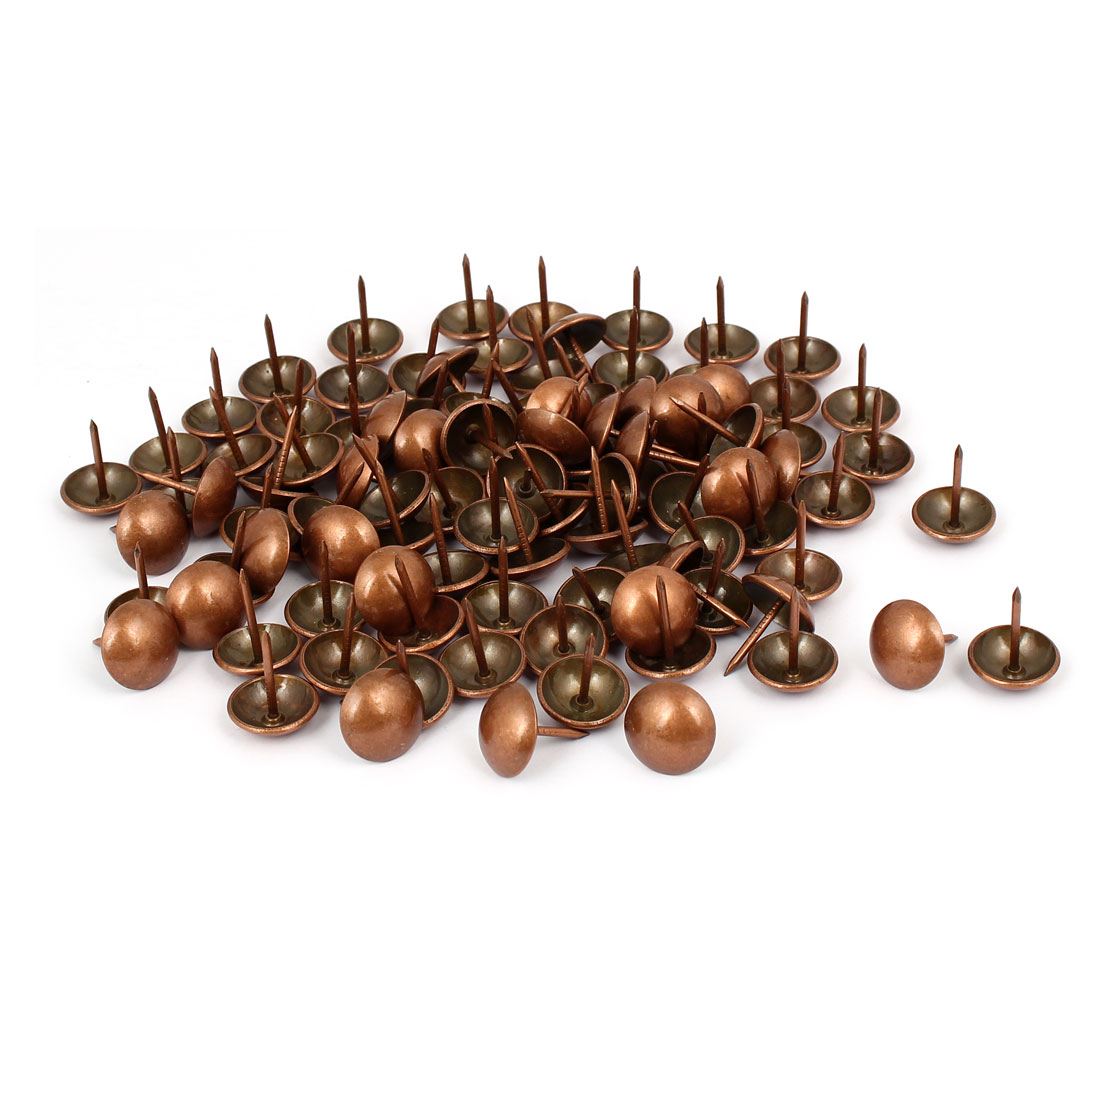 Unique Bargains Metal Upholstery Tack Push Nail Copper Tone 16mm Dia 100pcs for Furniture Decor